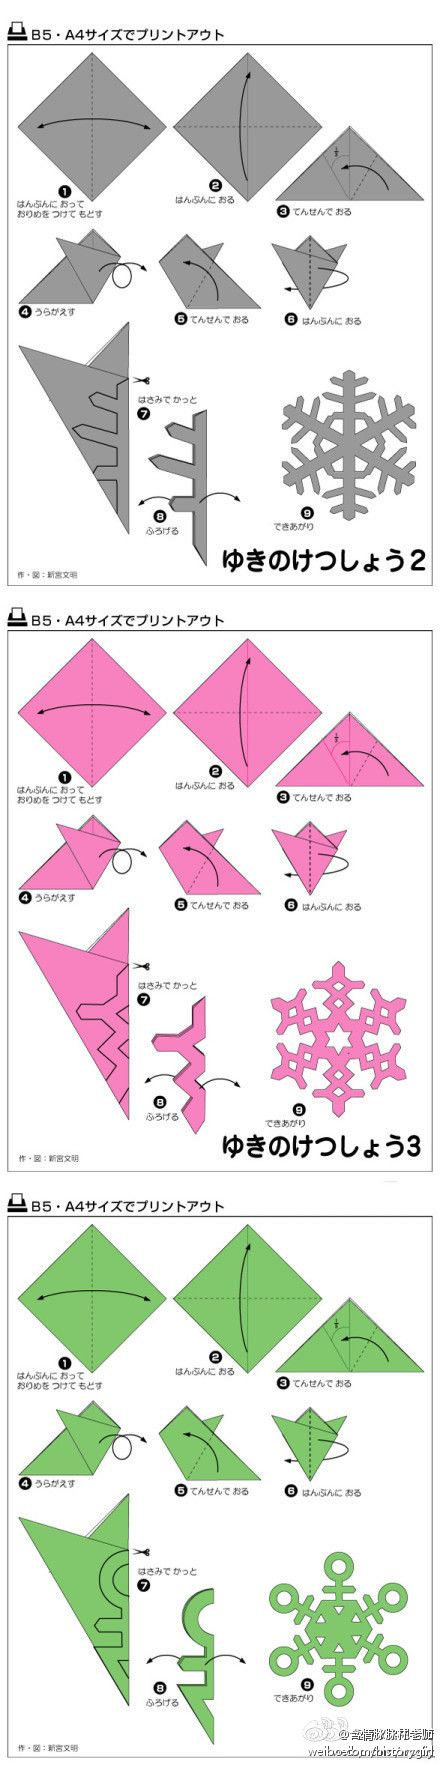 snowflakes instructions: